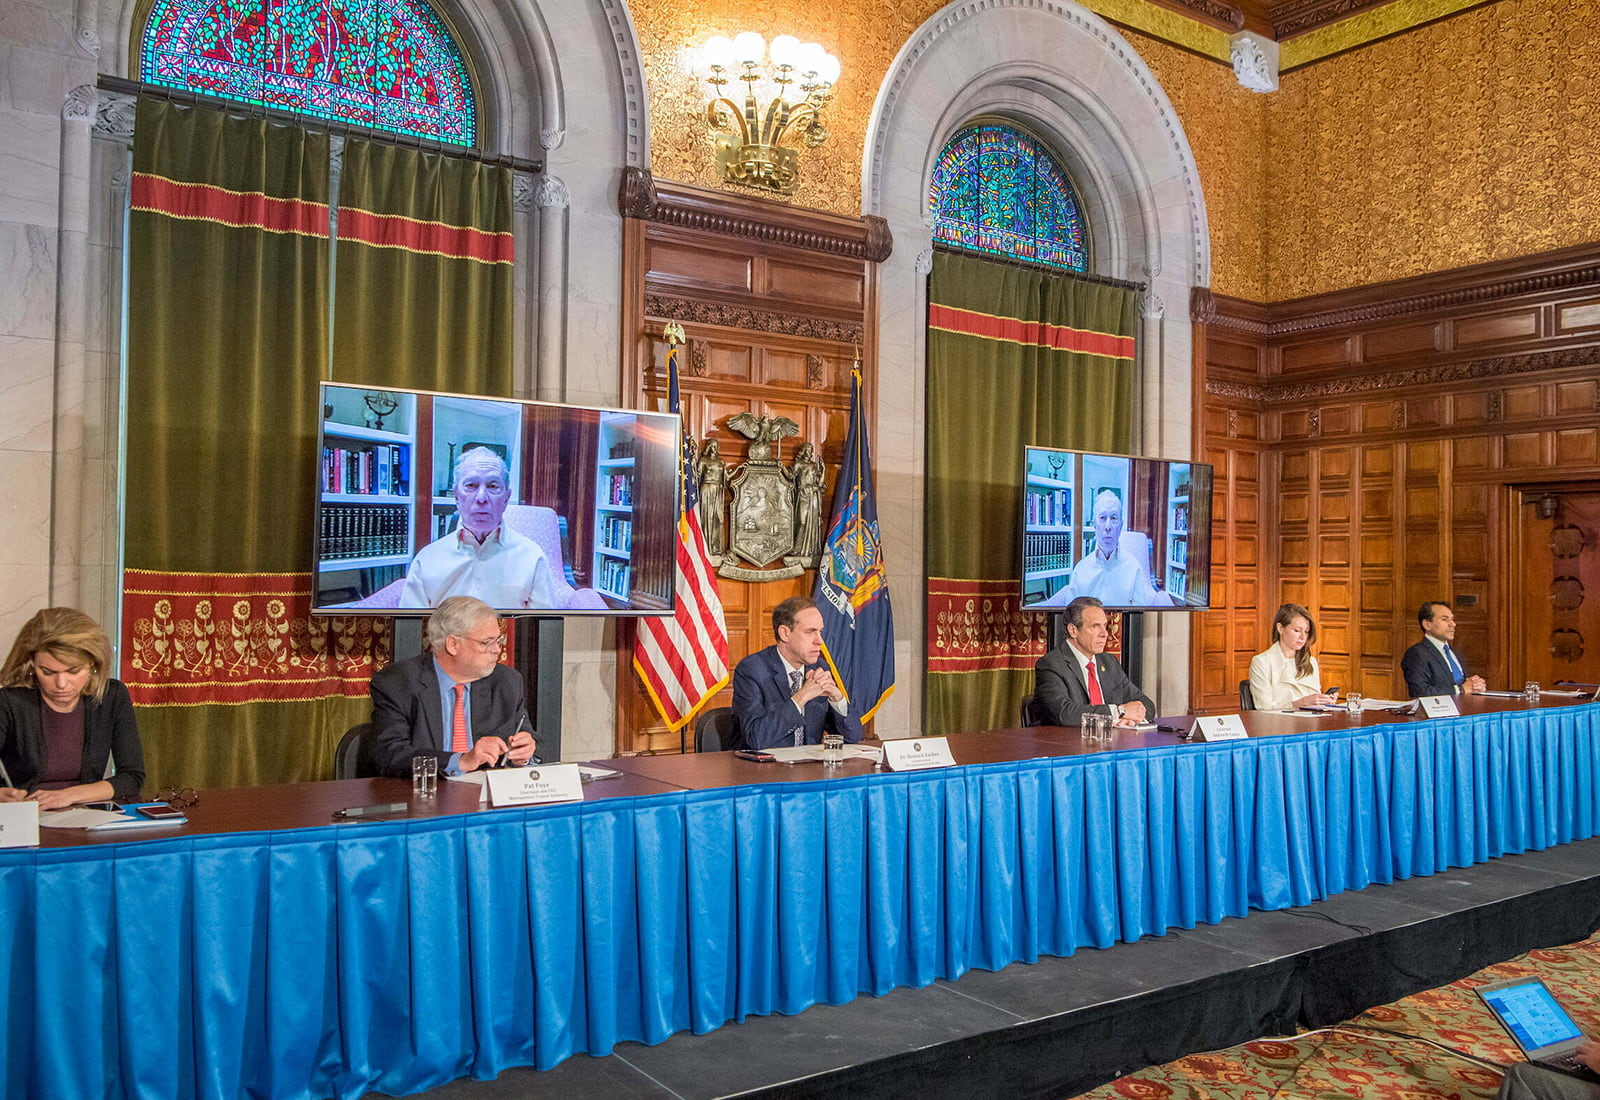 New York Governor Andrew Cuomo announces the state's contact tracing pilot program with support from Mike Bloomberg and Bloomberg Philanthropies. Cuomo sits with members of his administration during a press conference with Mike Bloomberg joining in via video conference call.